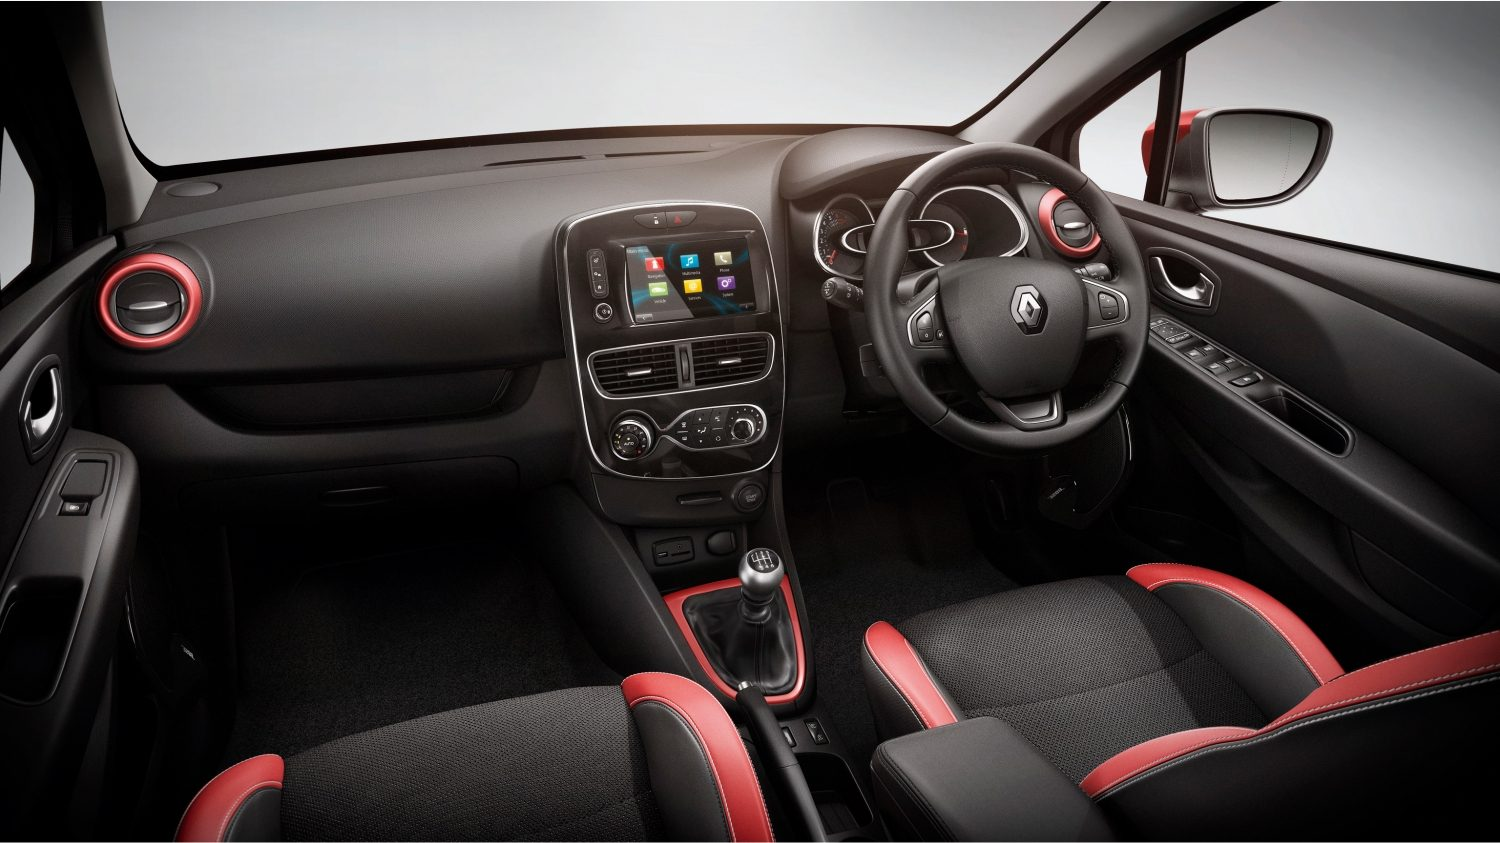 Renault Clio Wallpapers Vehicles Hq Renault Clio Pictures 4k Wallpapers 2019